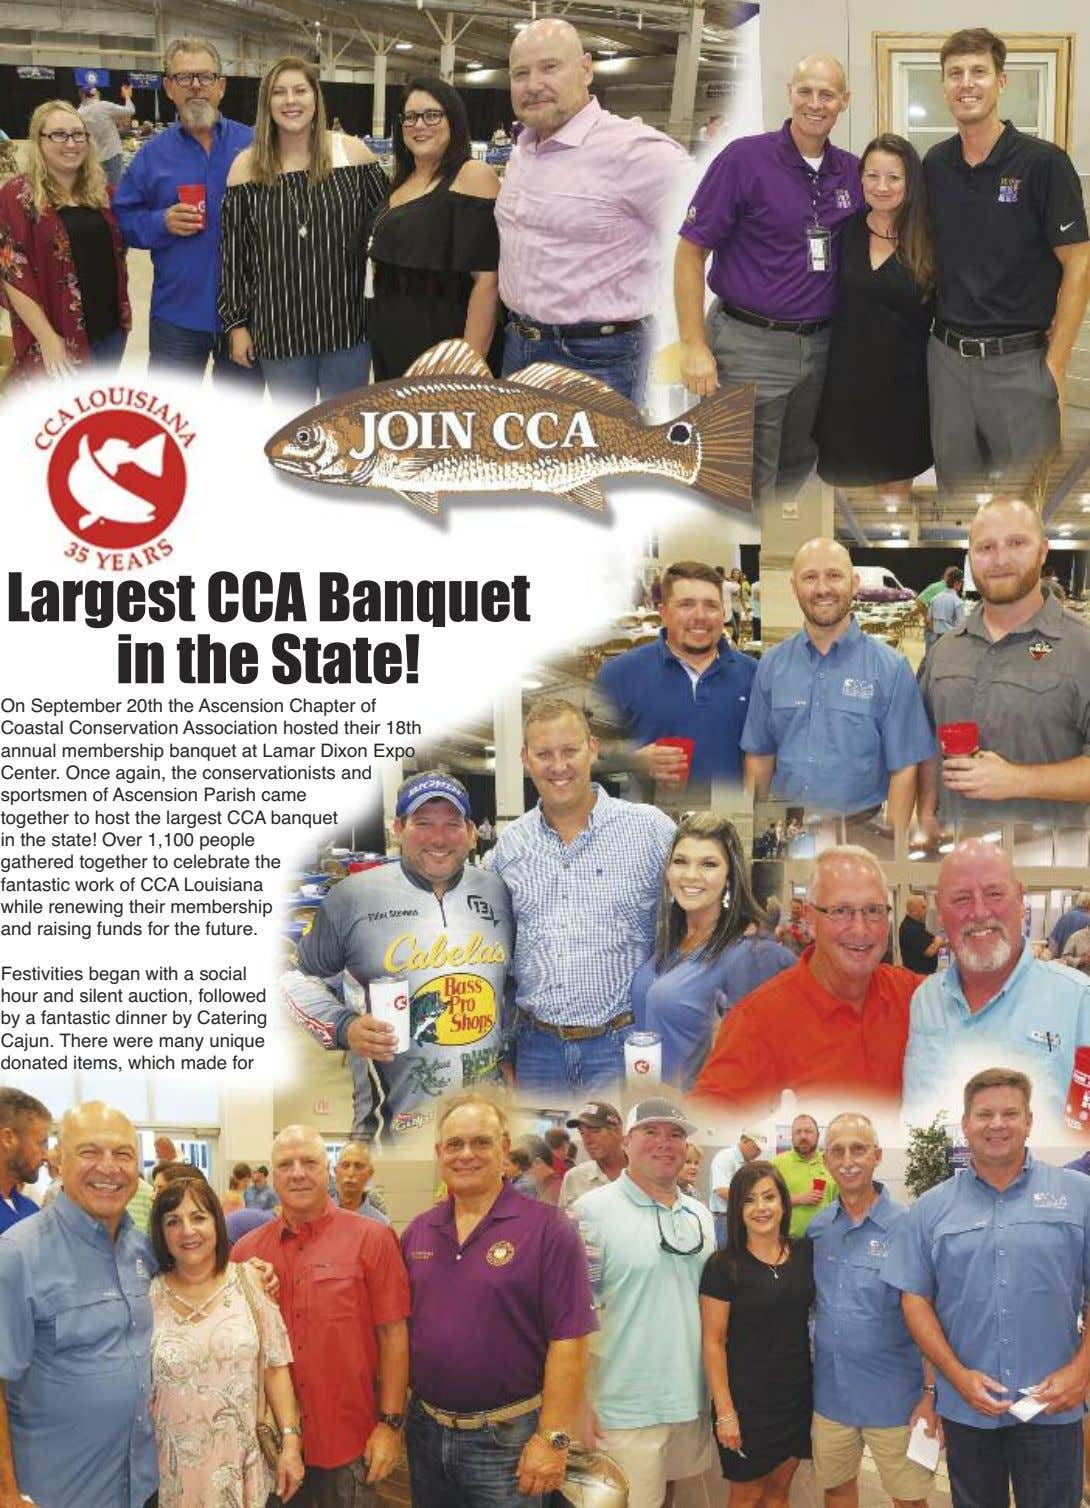 Largest CCA Banquet in the State! On September 20th the Ascension Chapter of Coastal Conservation